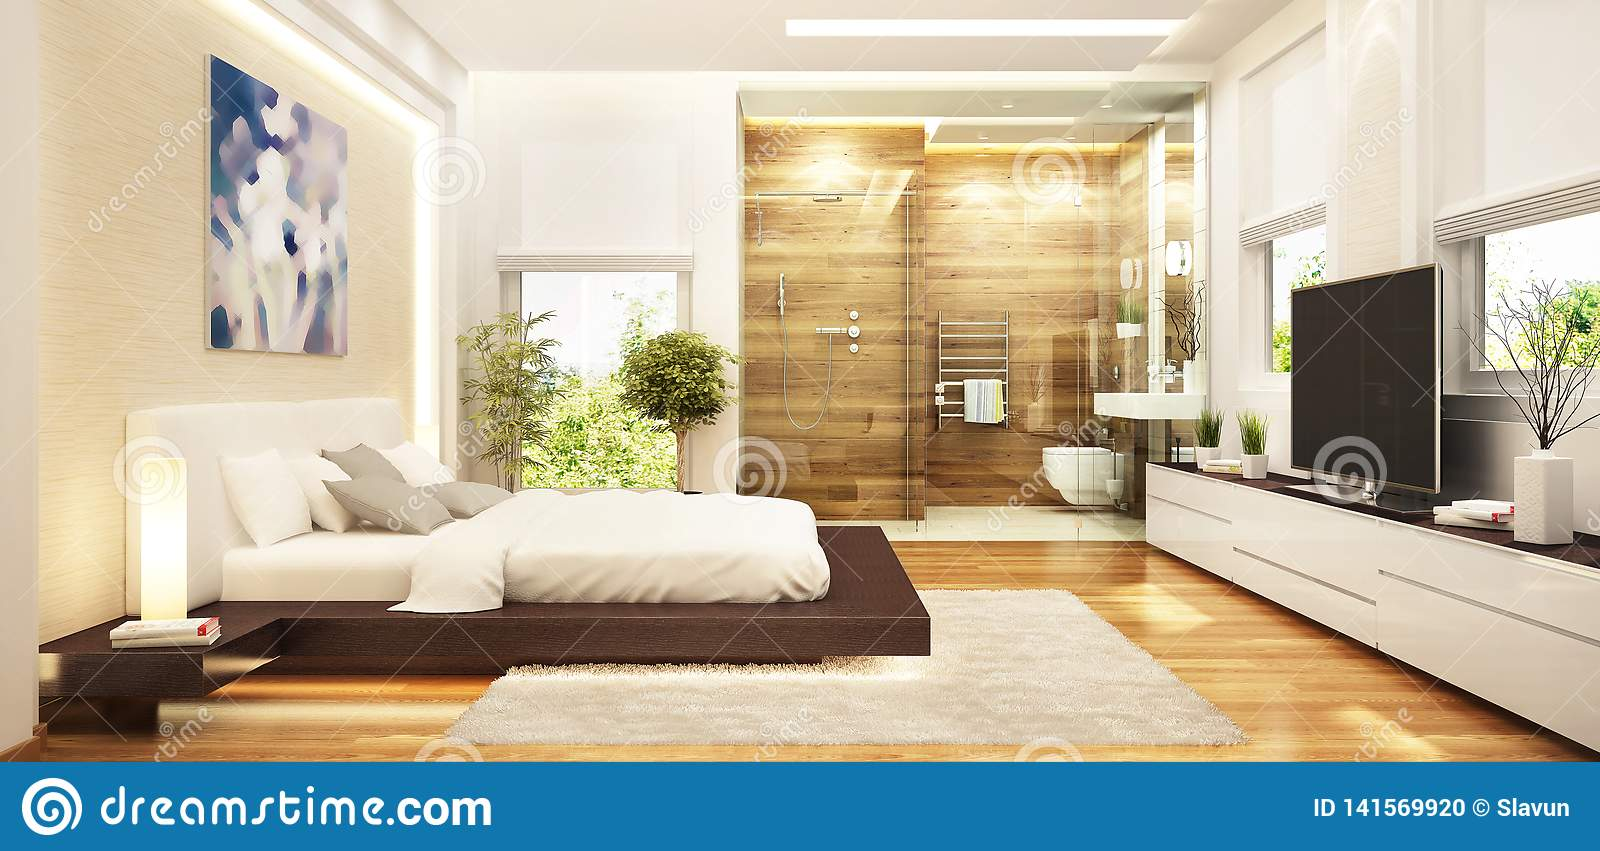 Modern Bedroom Interior Design Combined With A Modern Bathroom